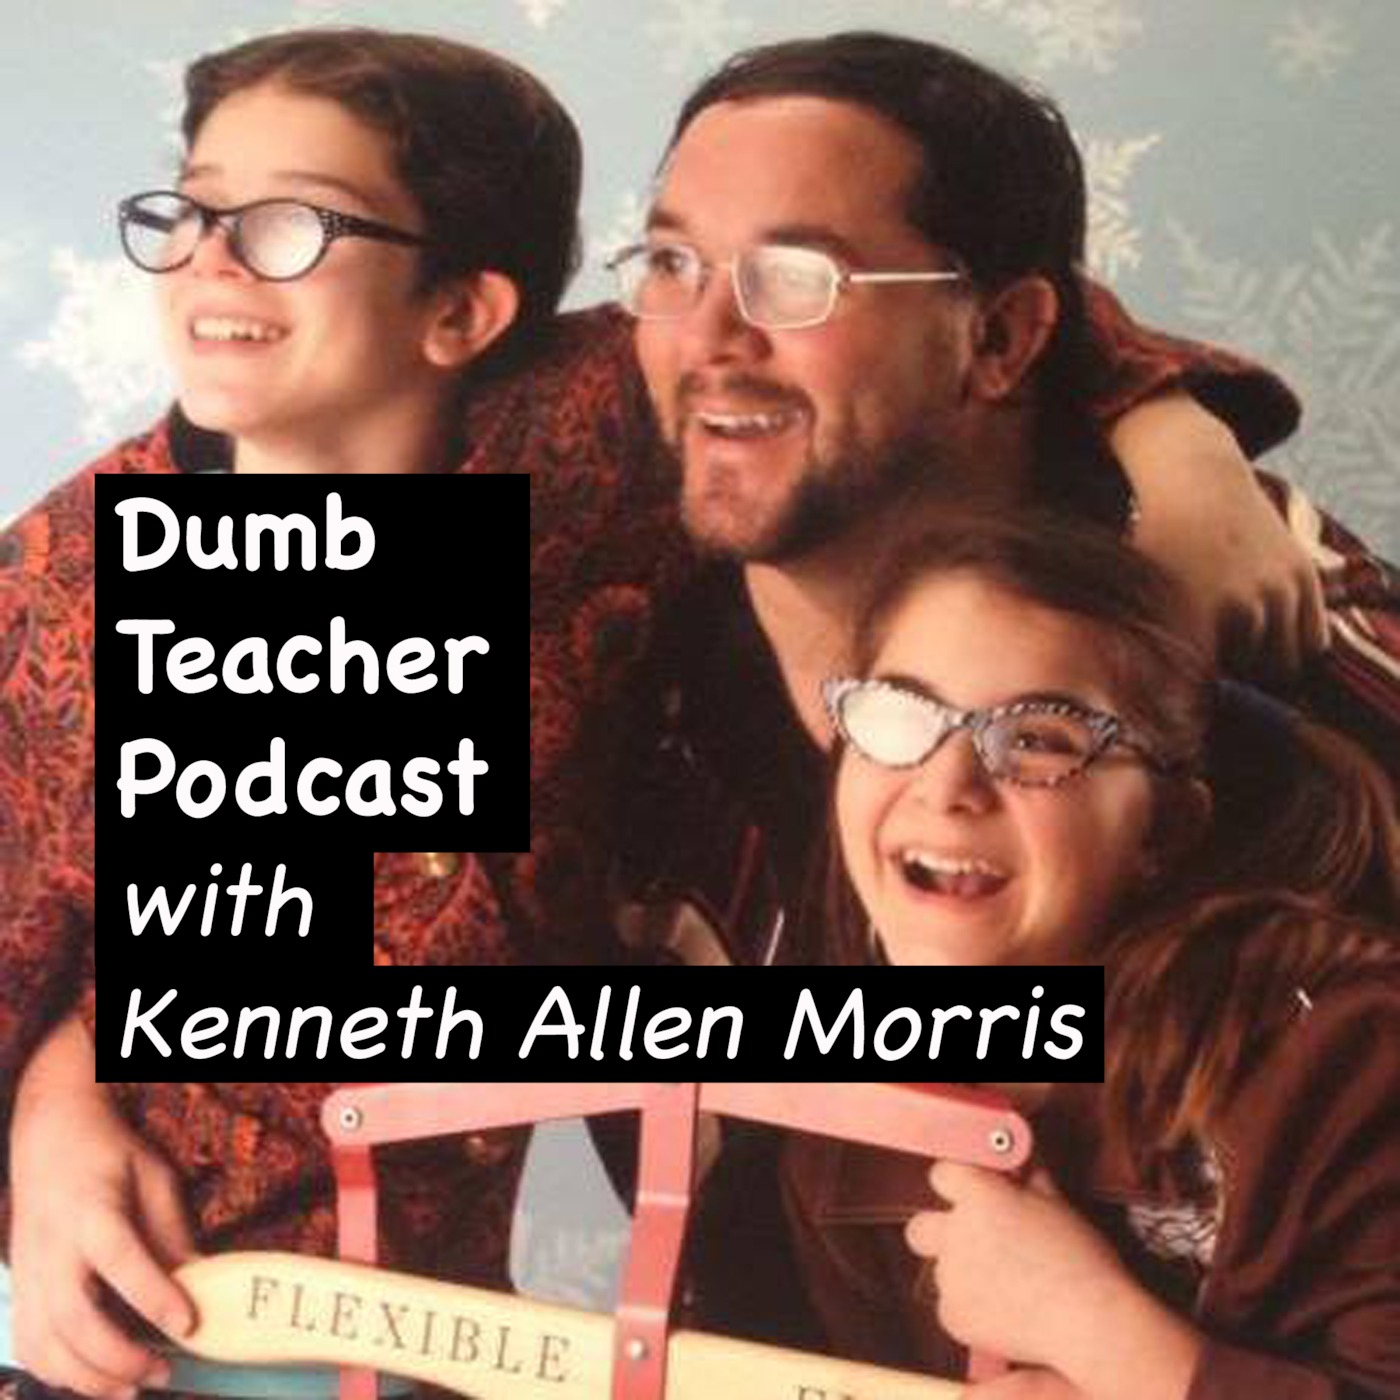 The Dumb Teacher Podcast